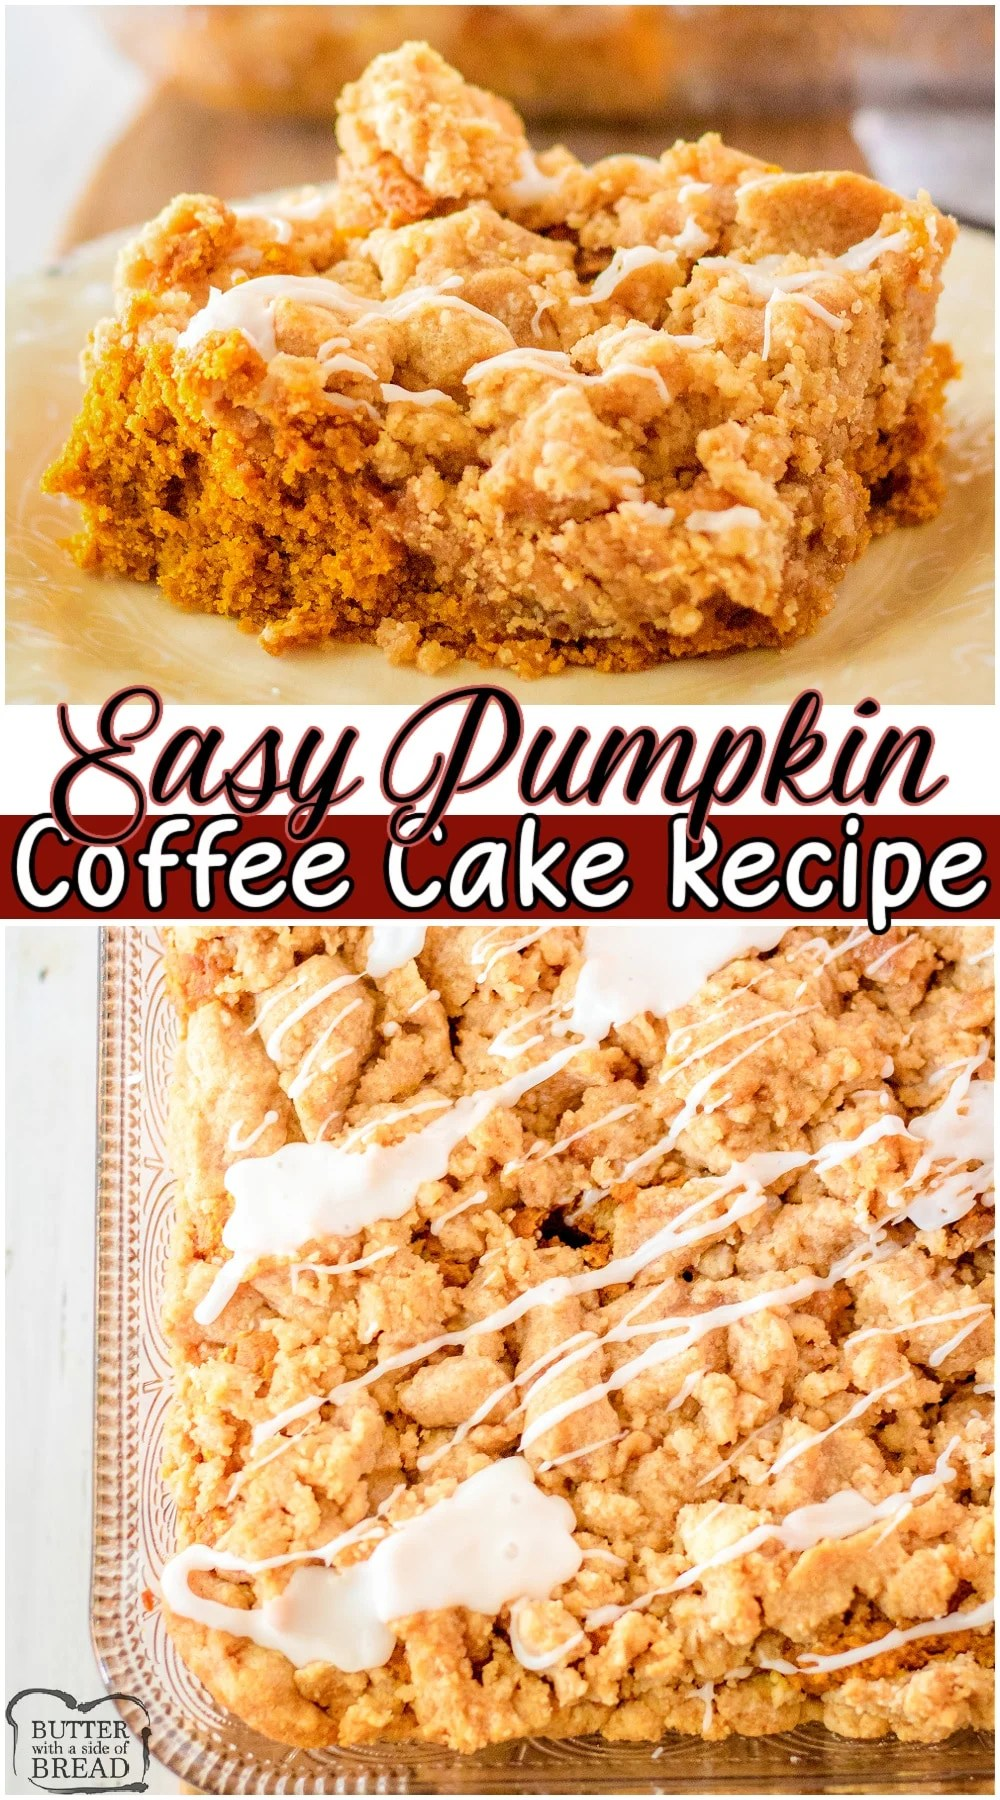 Easy Pumpkin coffee cake made with a cake mix & pumpkin, with a fantastic buttery brown sugar streusel topping! Lovely blend of Fall spices in a tender, delicious coffee cake recipe that's simple to make! #coffeecake #pumpkin #cakemix #breakfast #baking #Fall #easyrecipe from BUTTER WITH A SIDE OF BREAD